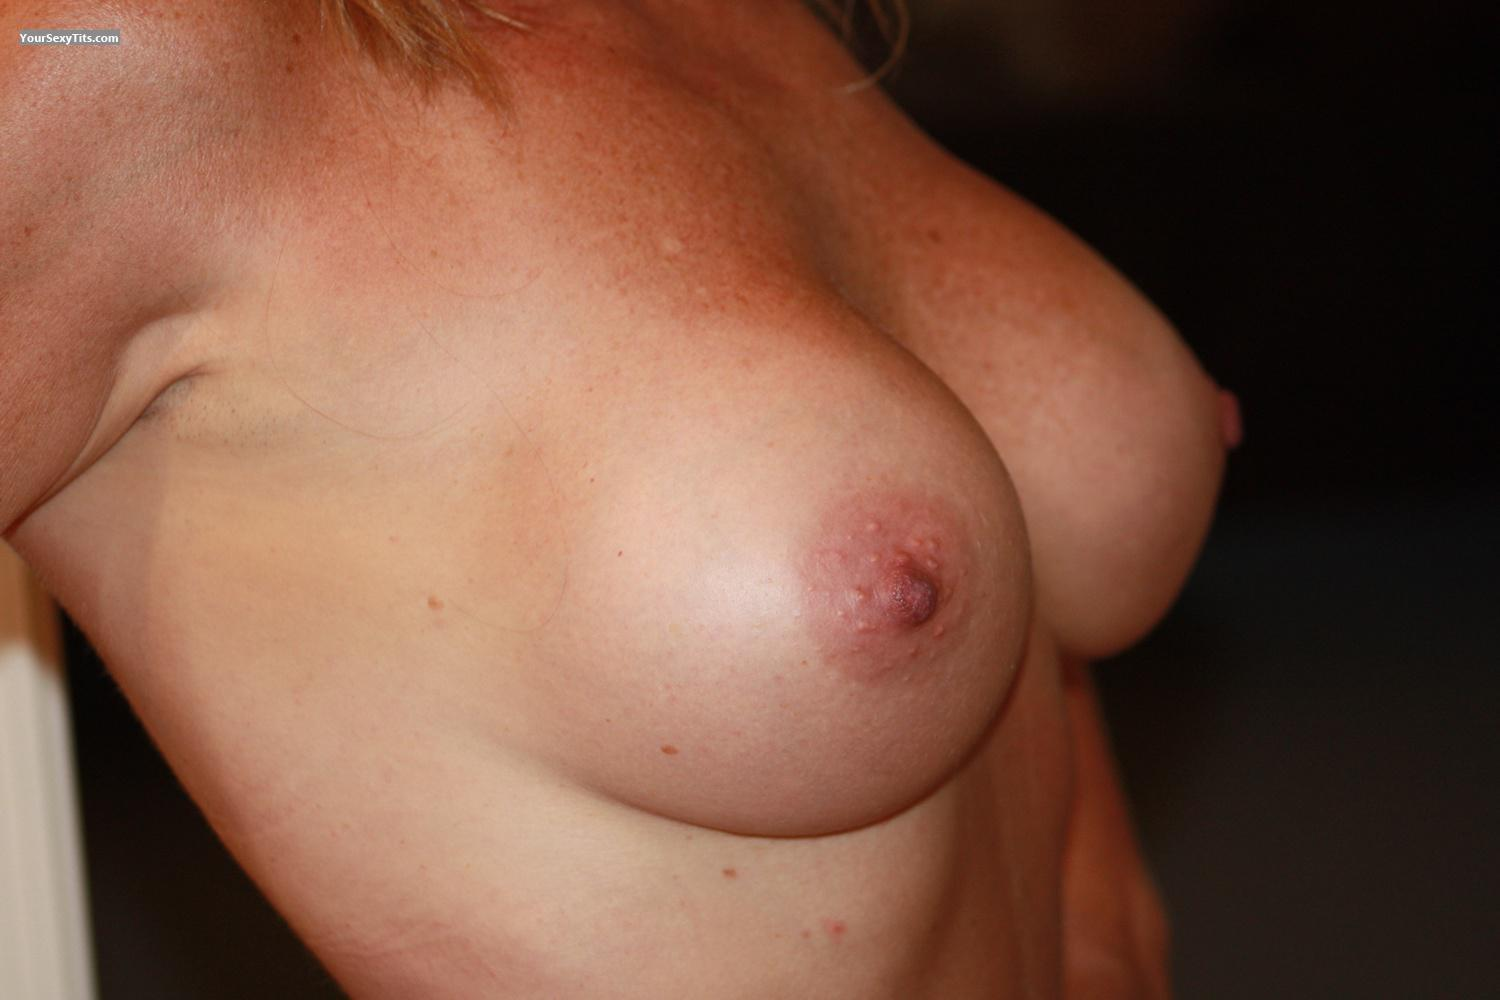 Tit Flash: Big Tits By IPhone - Fun Girl from United States